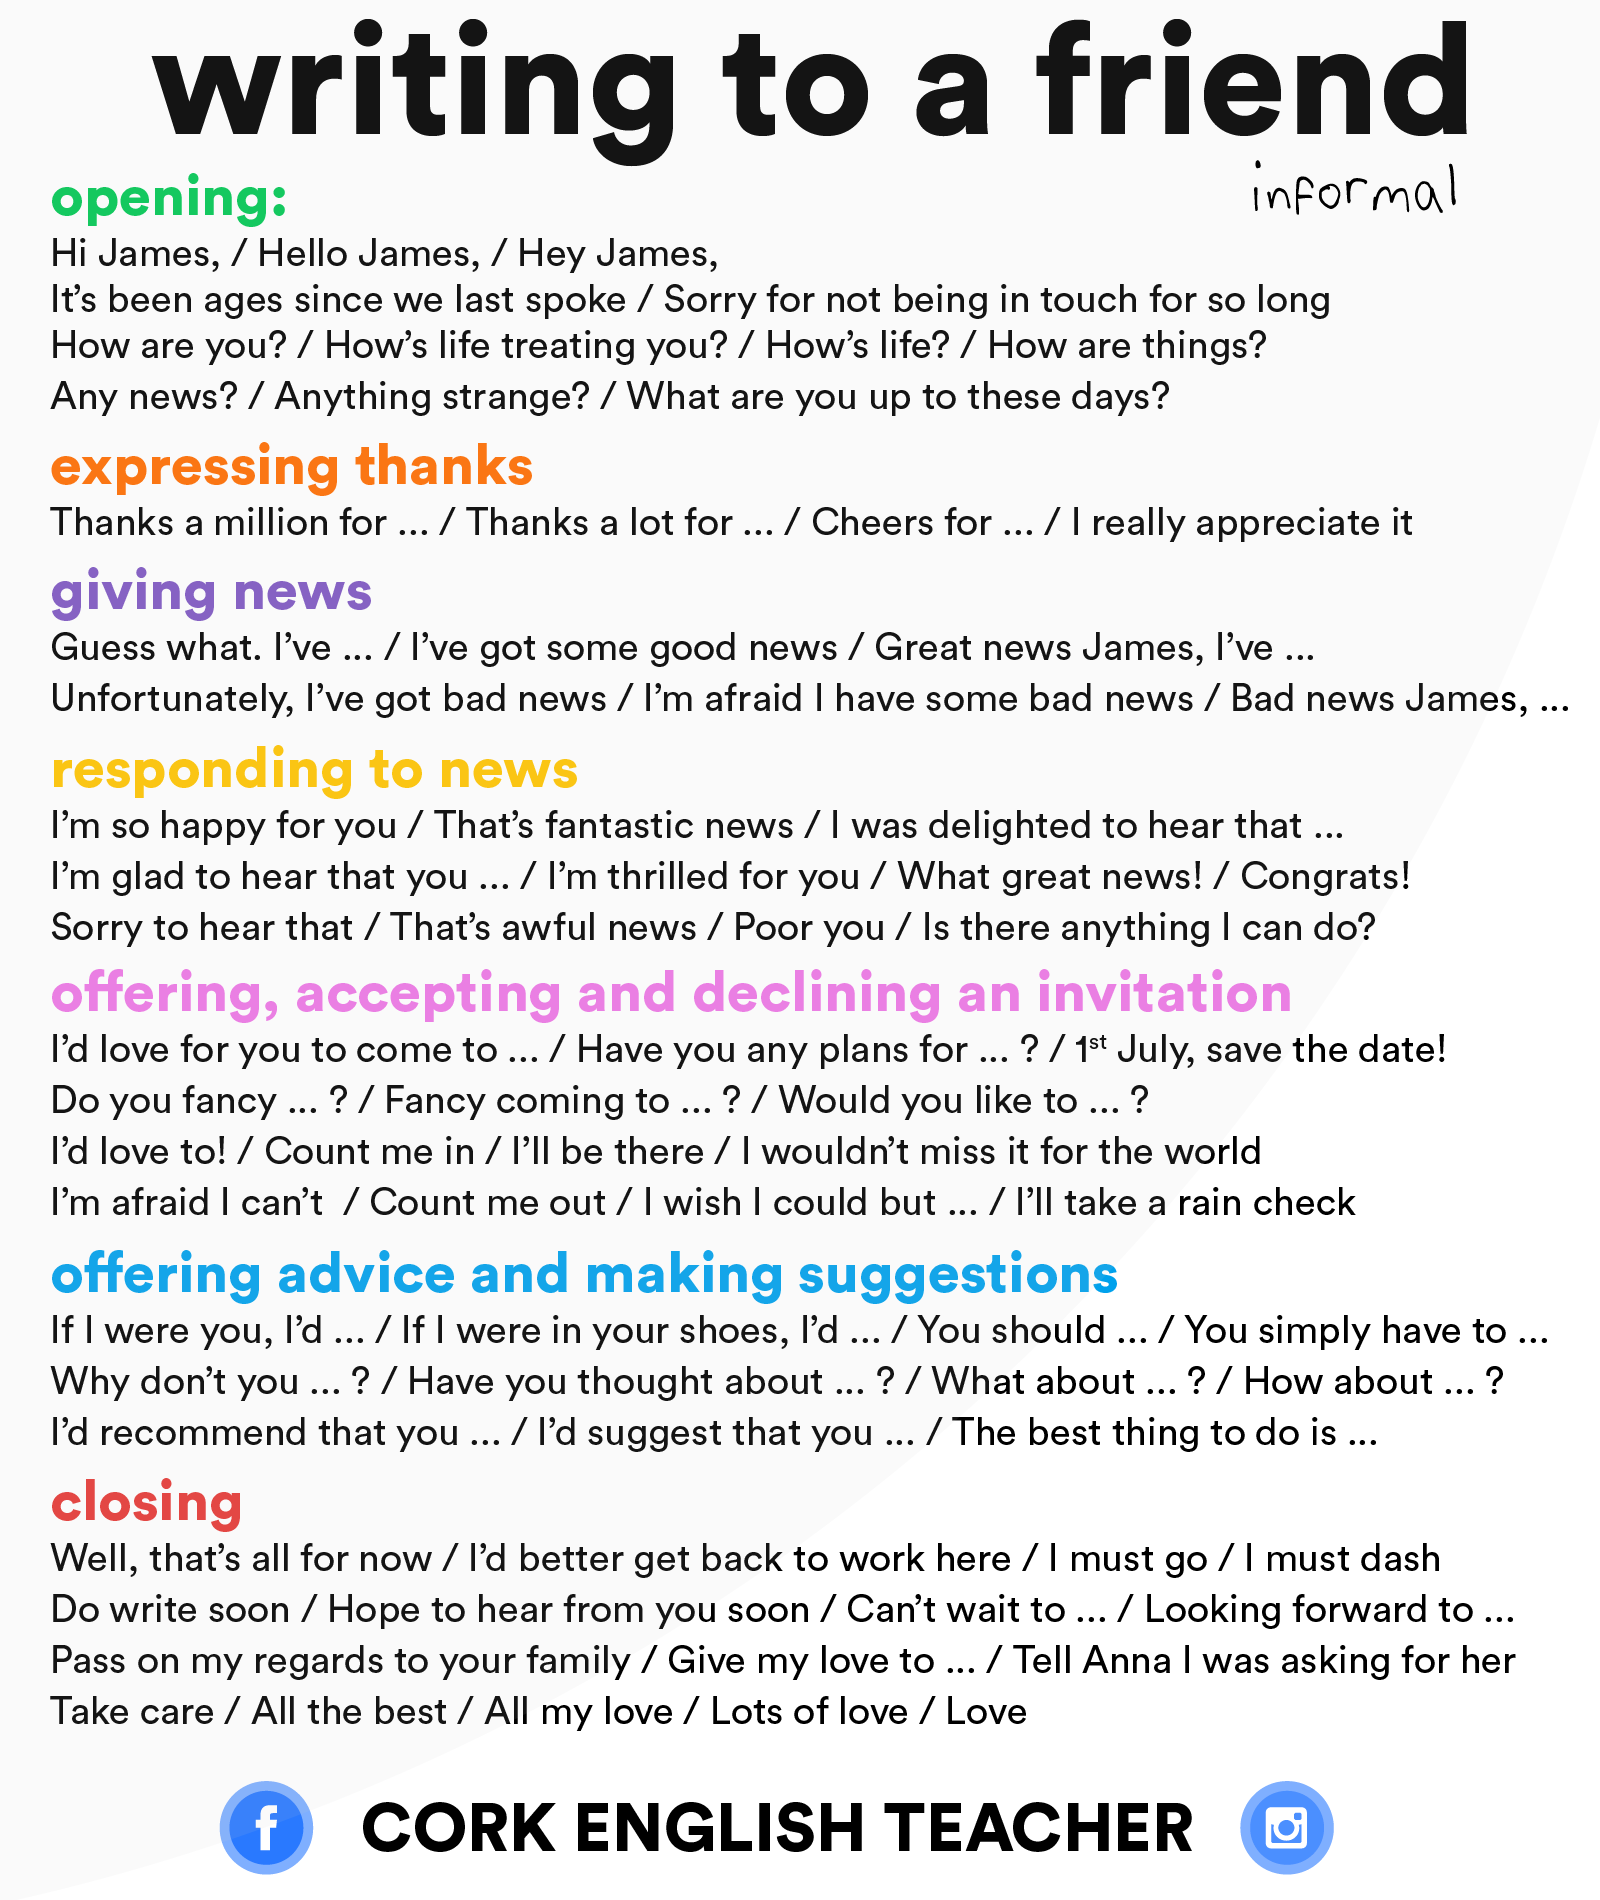 writing to a friend informal learnenglish